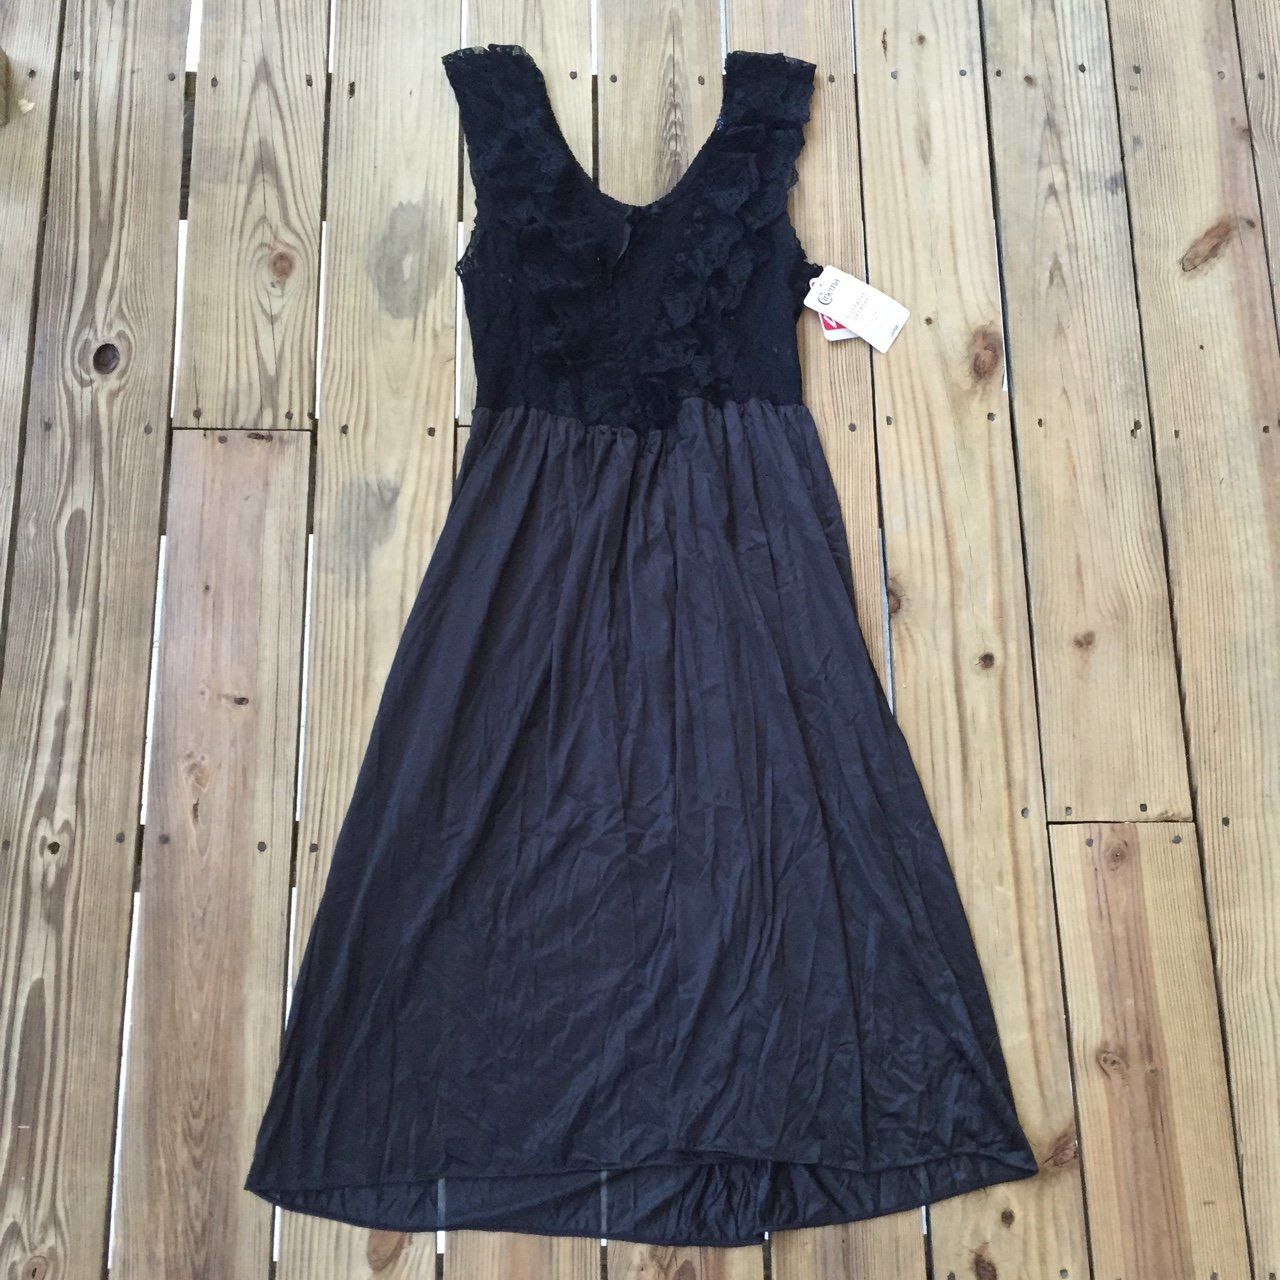 OMG gorgeous frilly goth witchy nightie nightgown. VINTAGE I - Depop b650b6f25